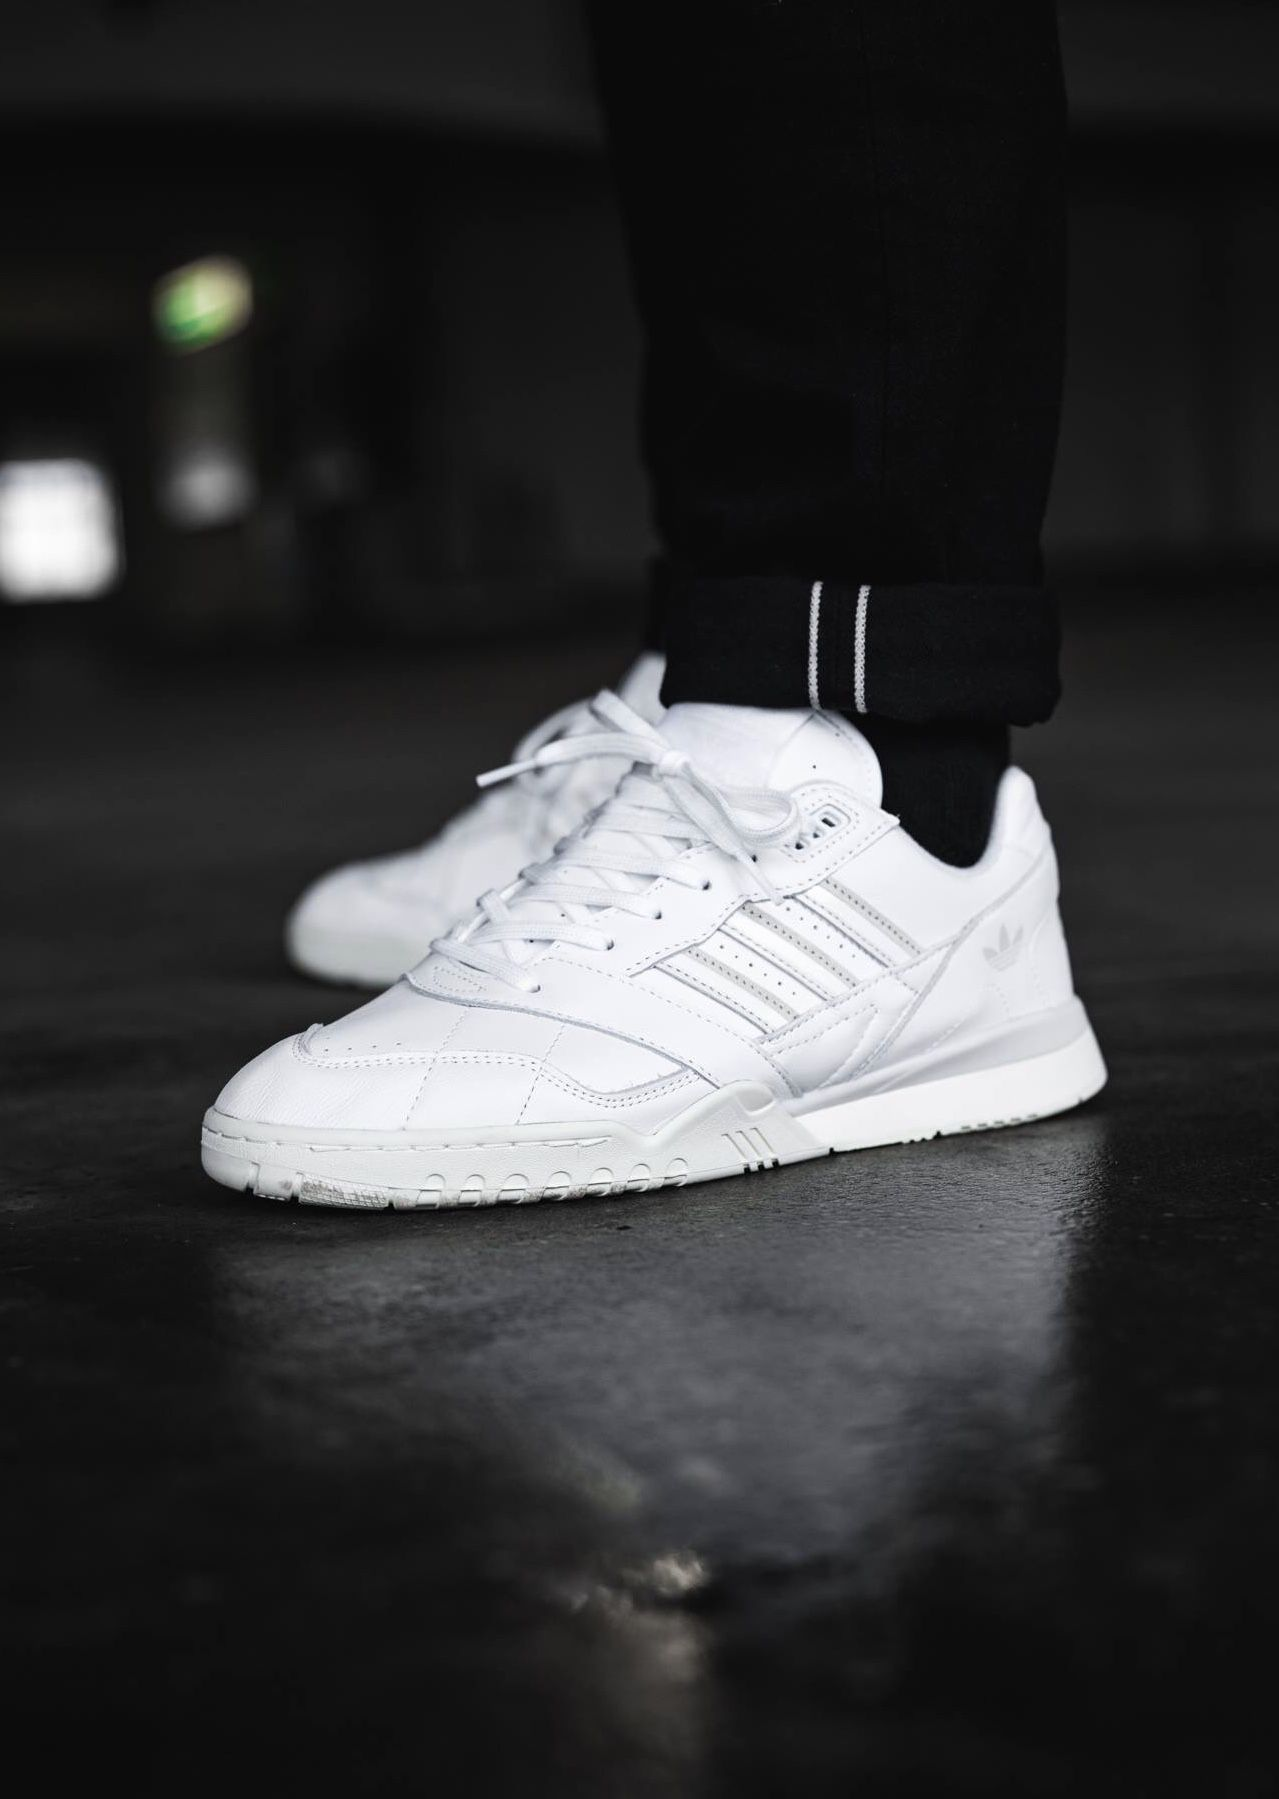 adidas Originals AR Trainer | Adidas sneakers, Adidas